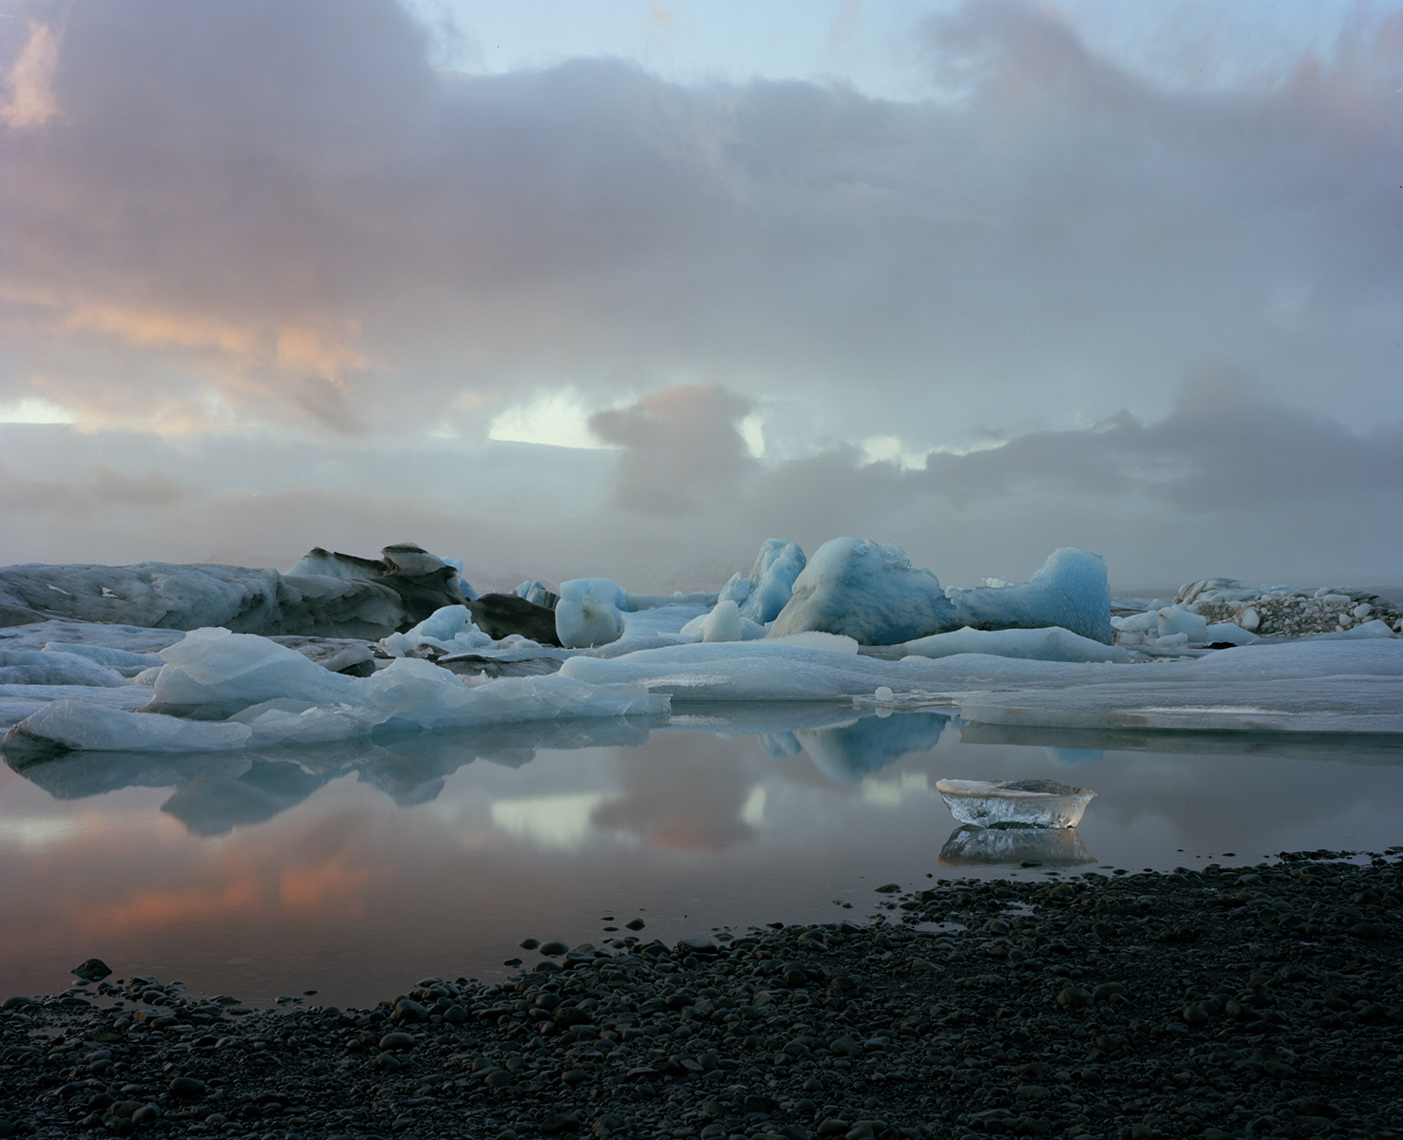 hellotpd_Jonathan_Smith_Iceland_Residency_26